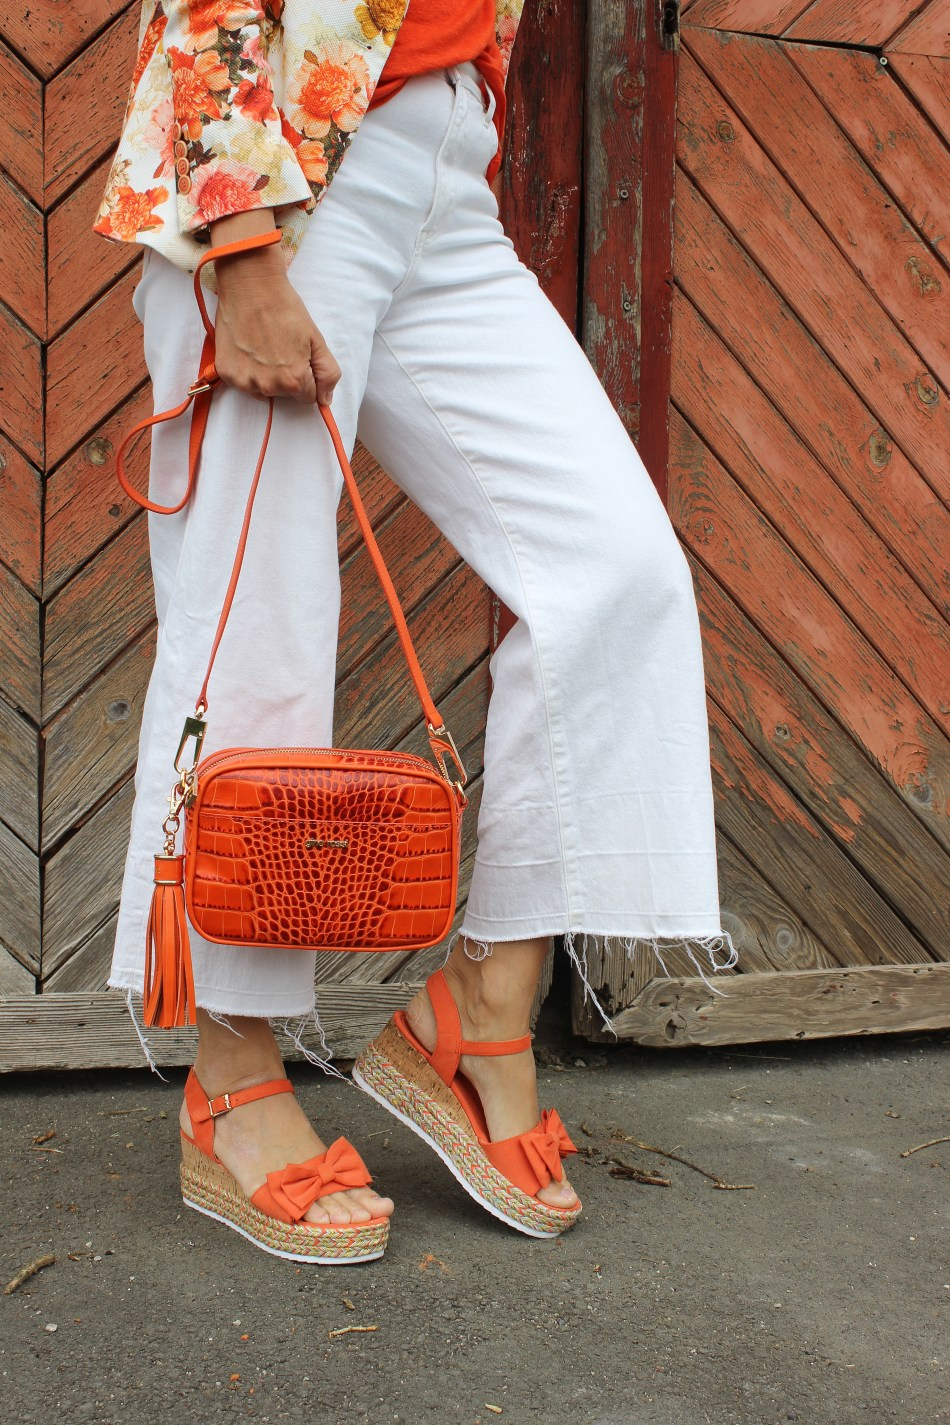 Trendfarbe-2020-Orange-Culotte-Blumenprint Blazer Orange Zara-Sandalen- CCC Shoes and Bags-Krokoleder Tasche Orange-carrieslifestyle-Tamara-Prutsch